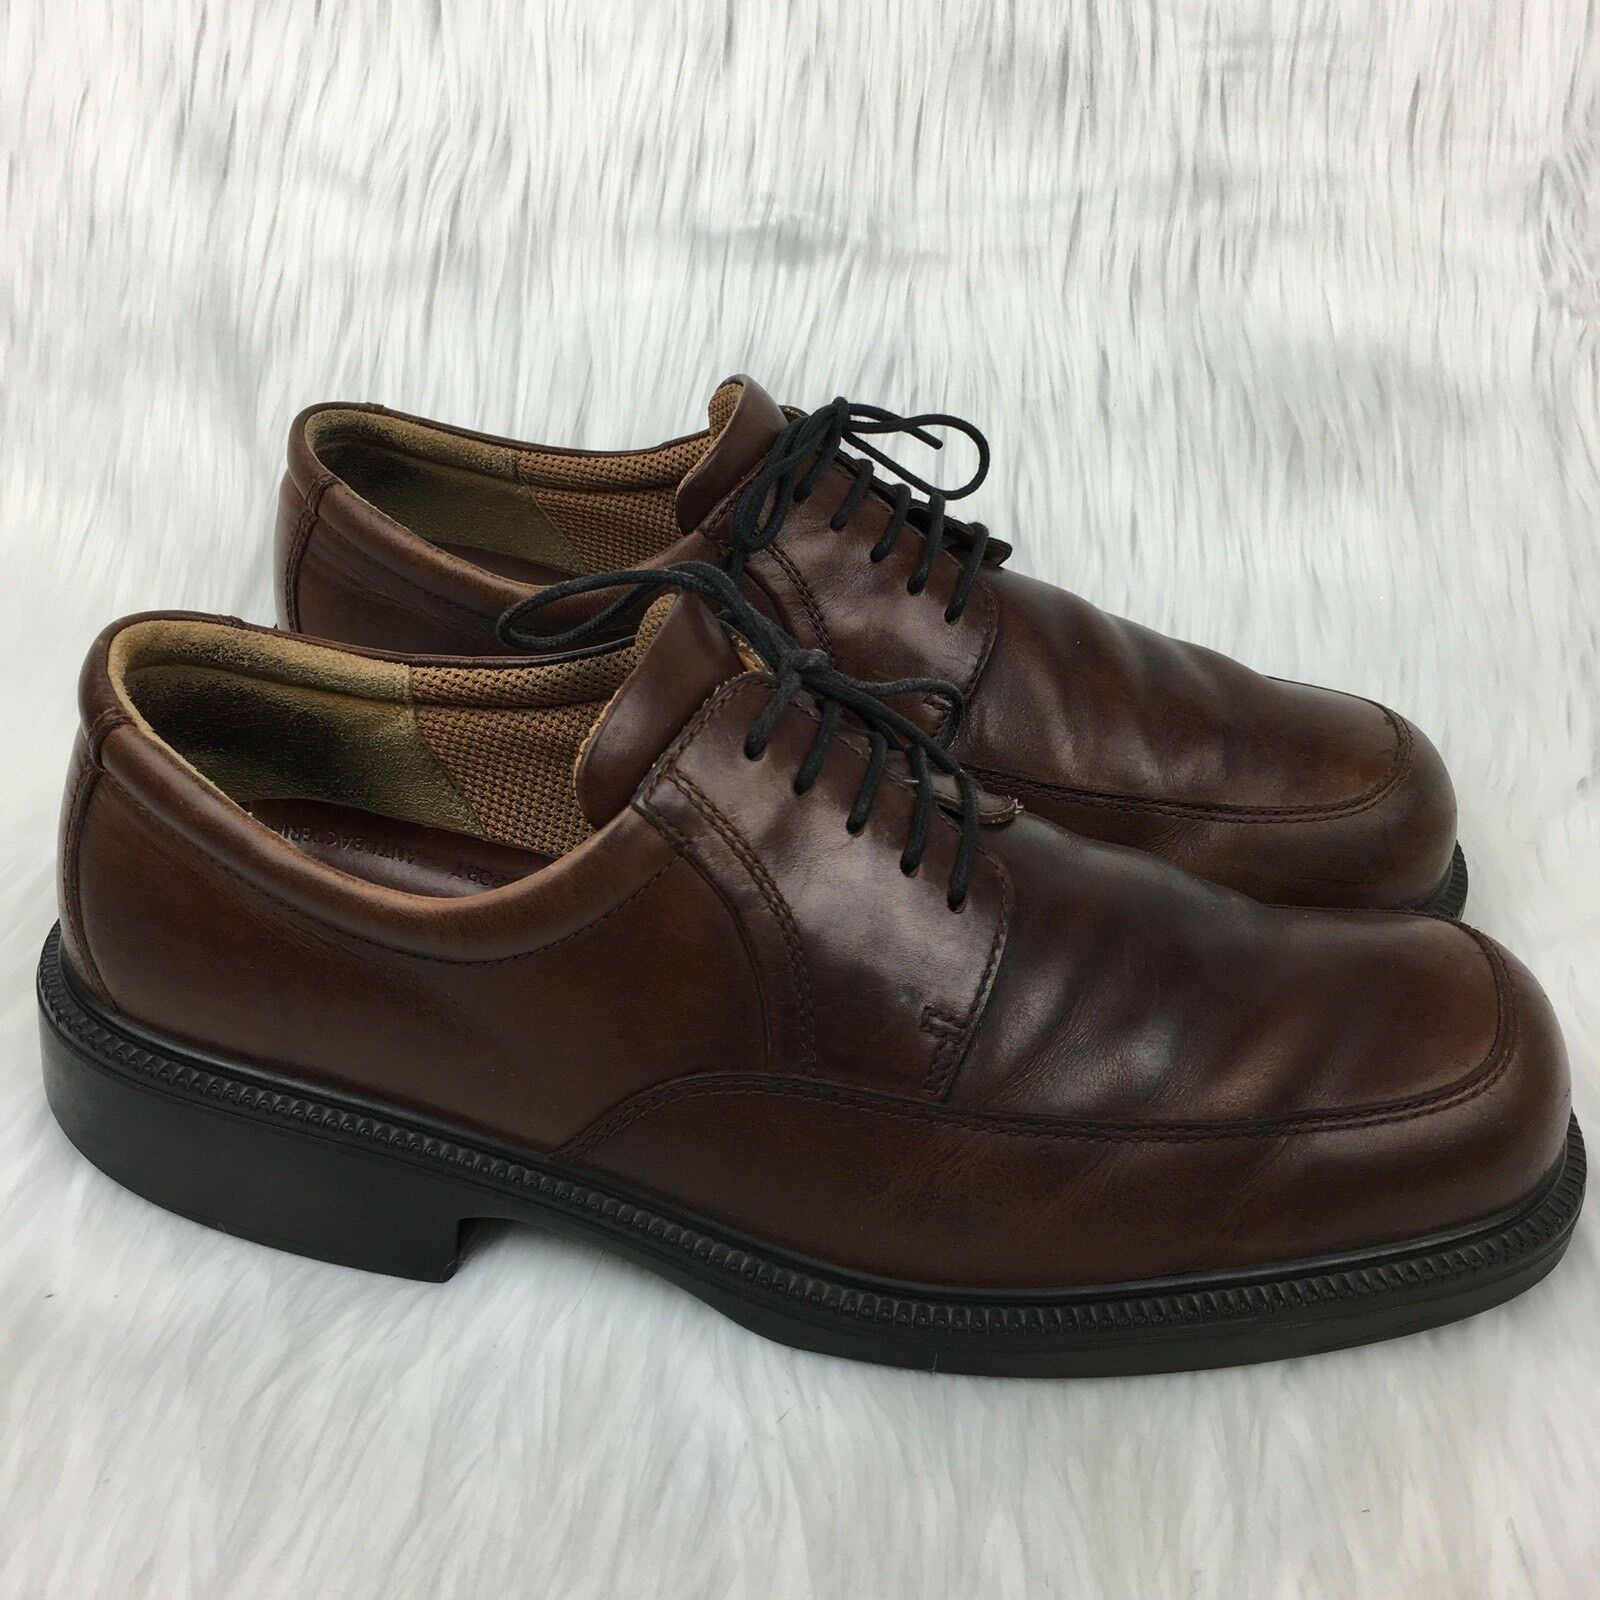 Ecco 46 12 new shoes shoes Derby Leather Dark Brown Career Apron Toe Lace Up Oxfords